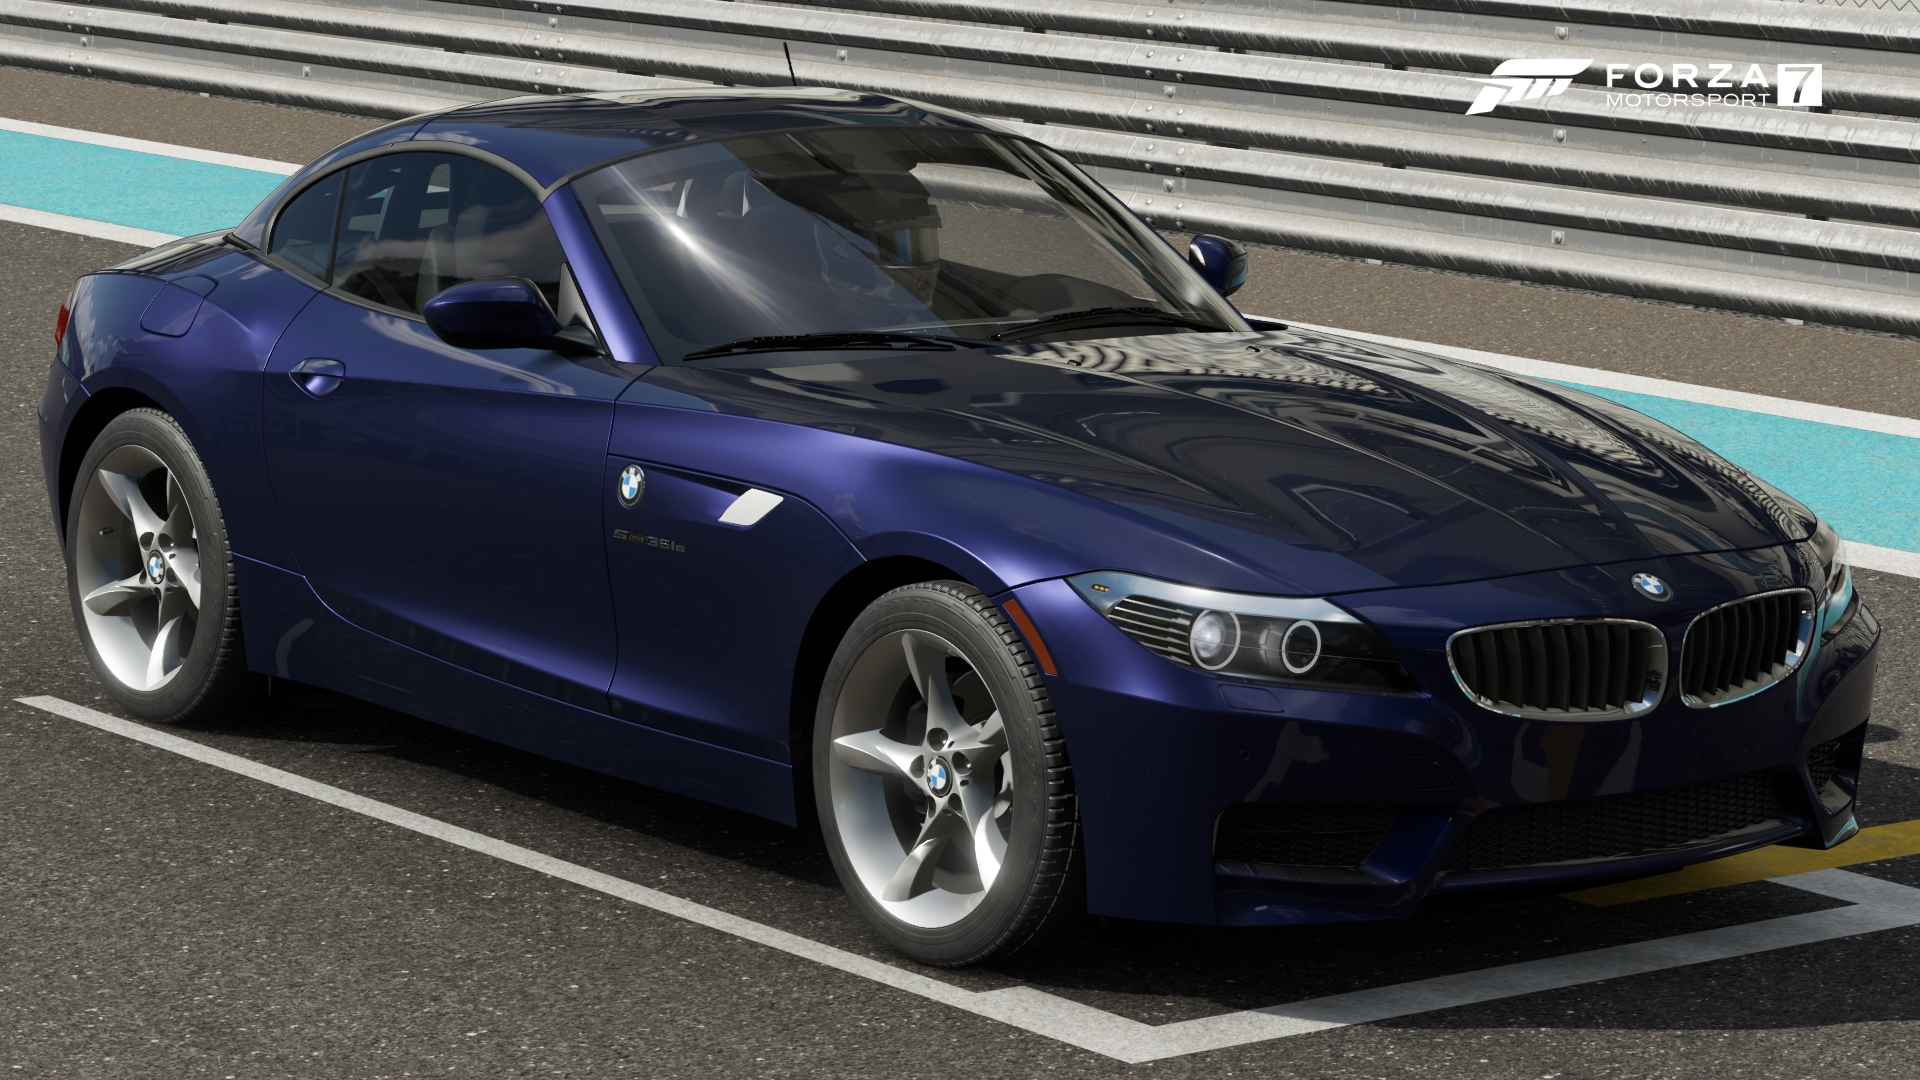 The 2011 BMW Z4 SDrive35is In Forza Motorsport 7